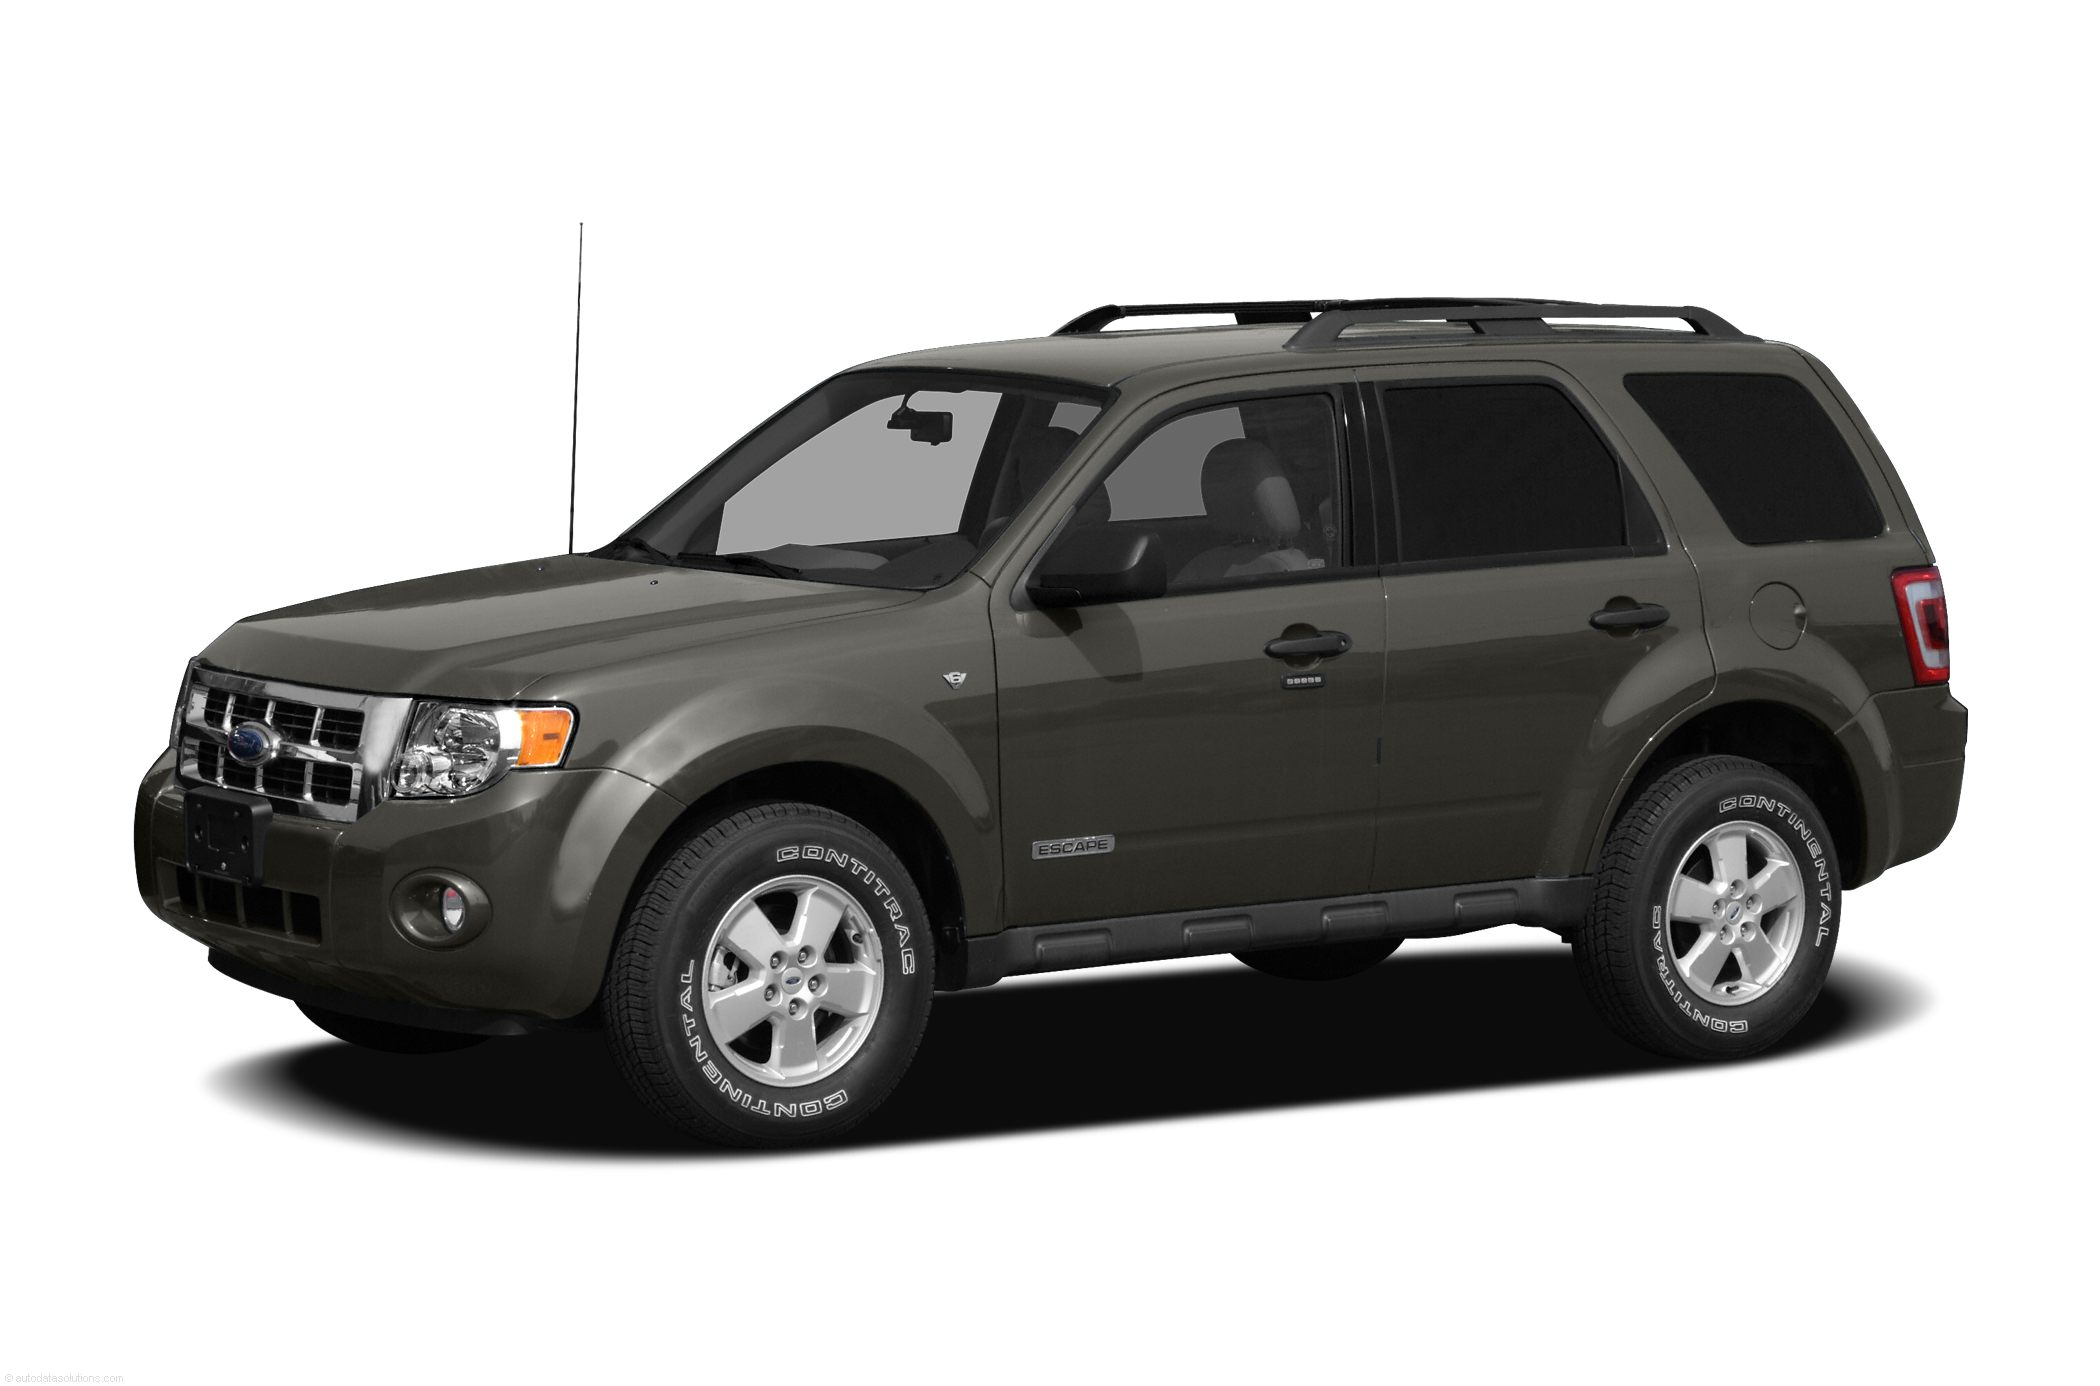 2010 Ford Escape #3